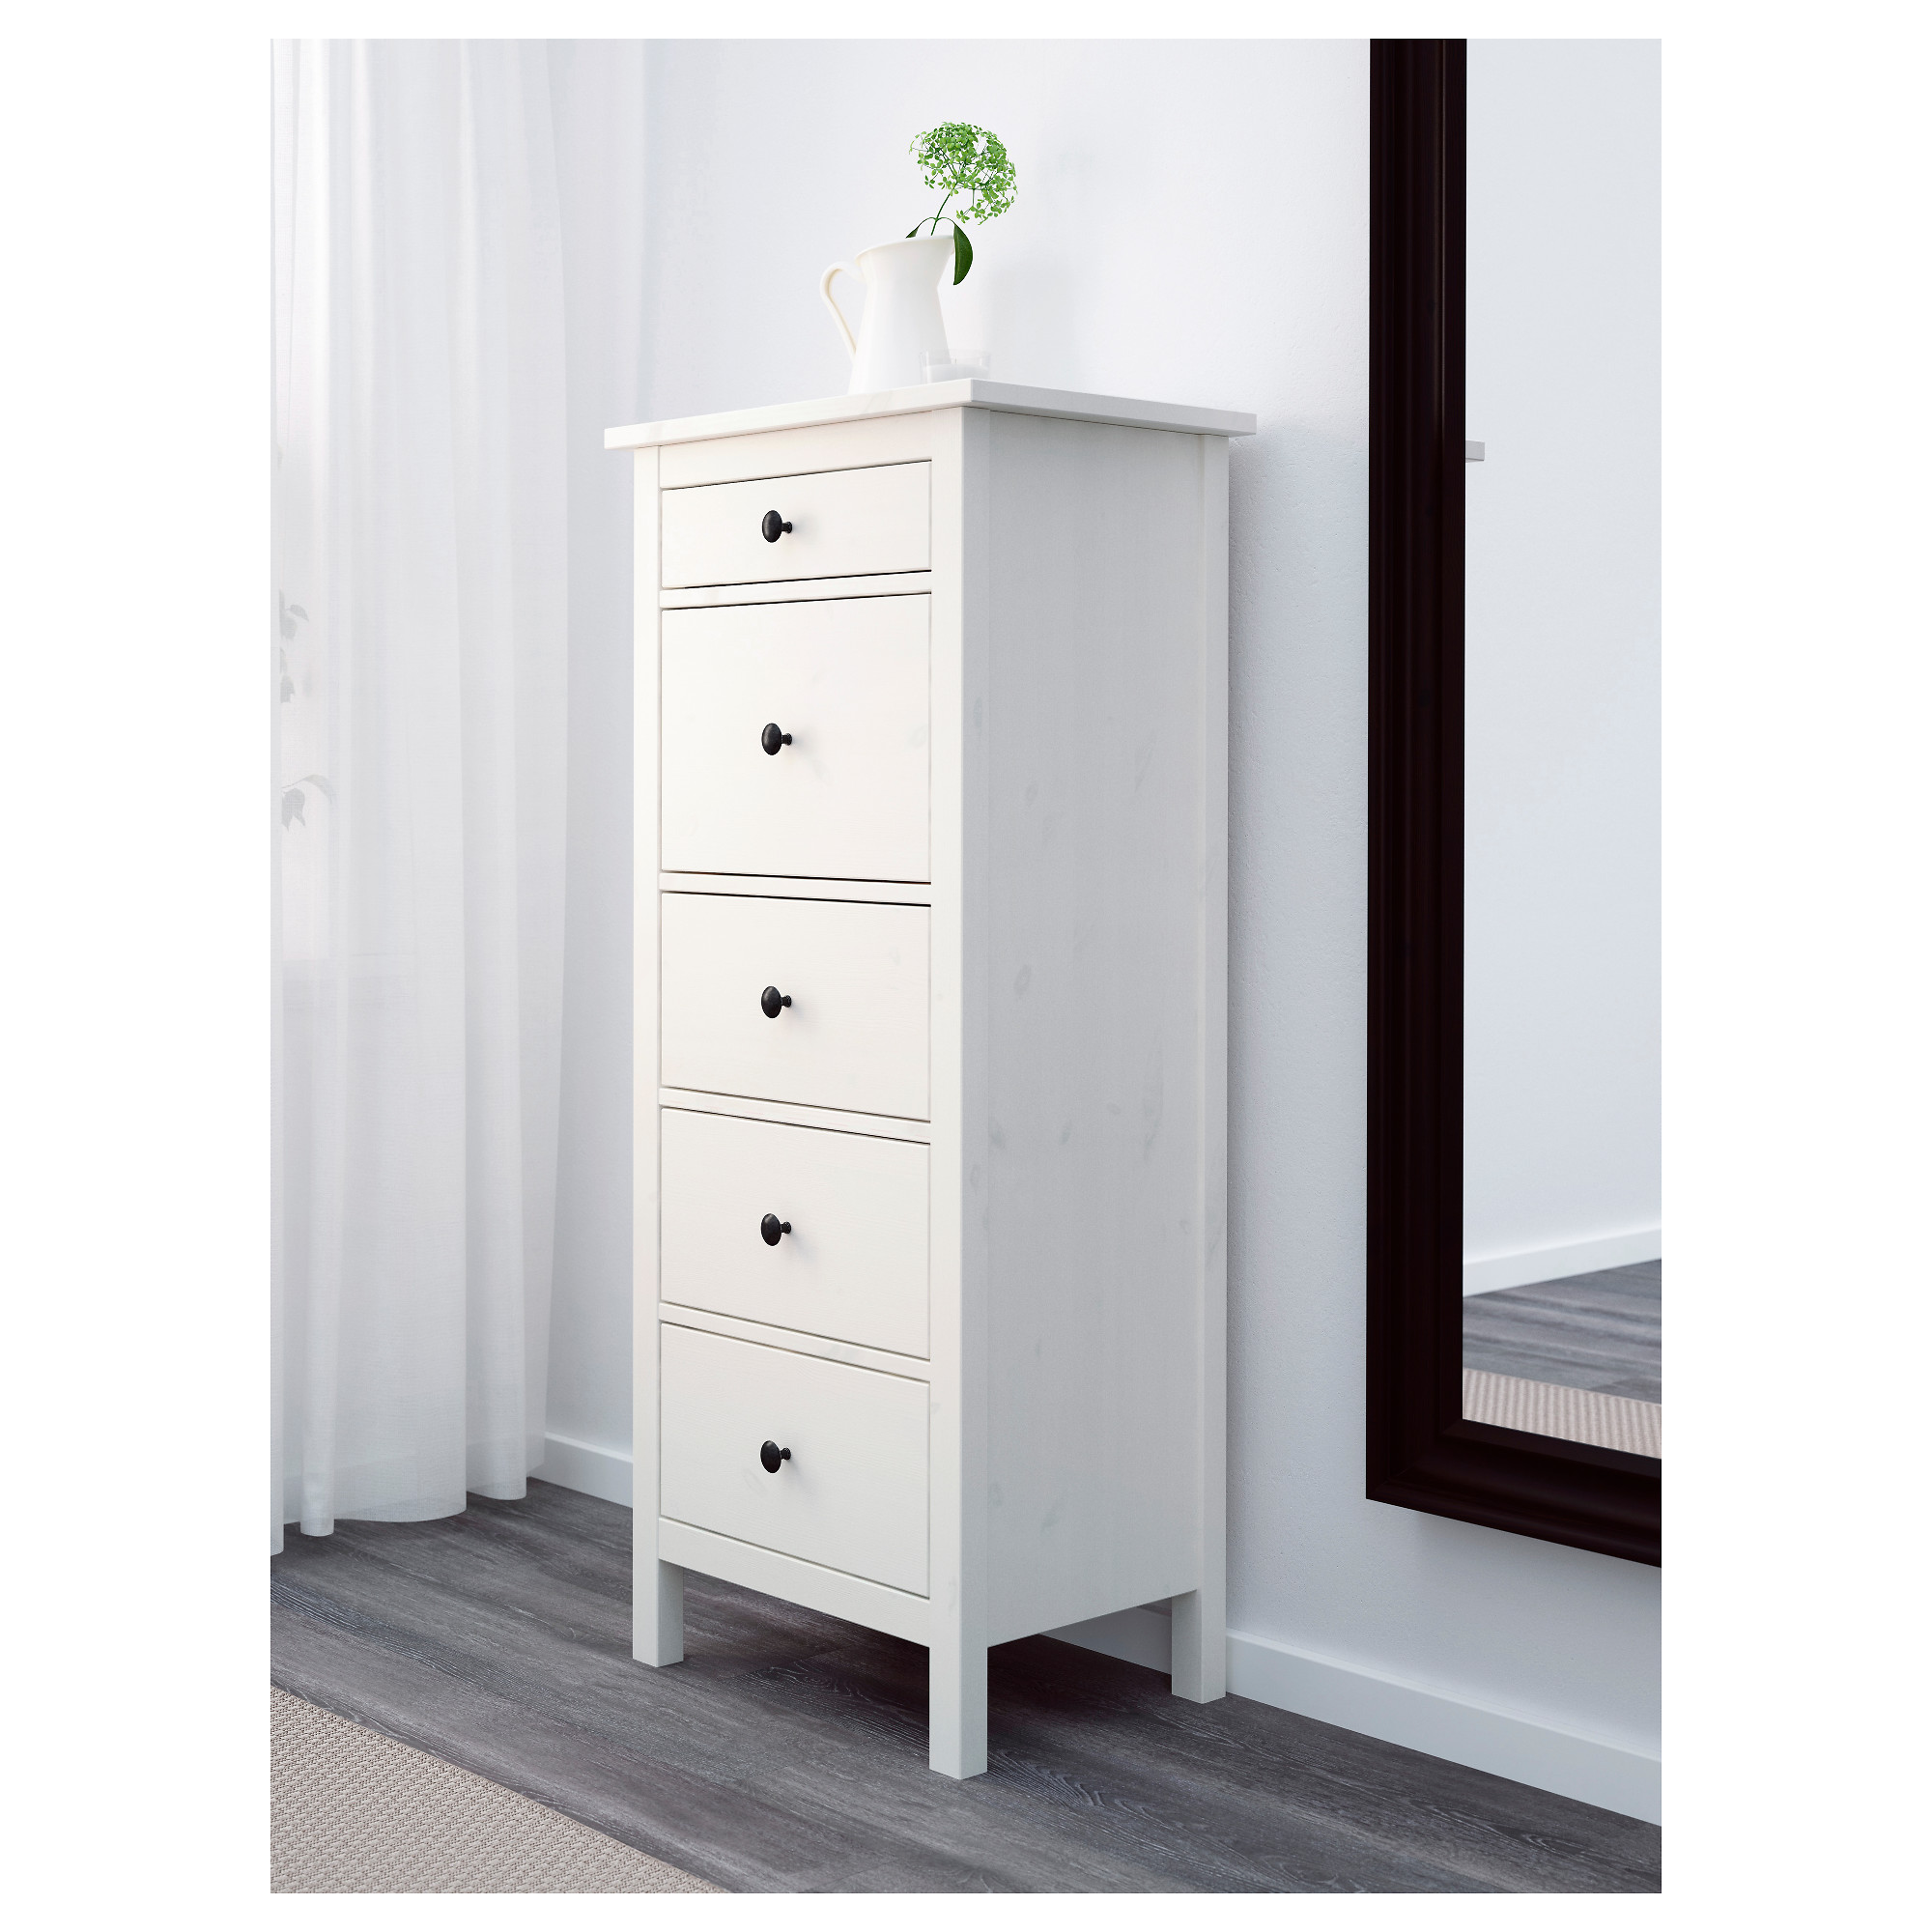 furniture width warehouse whistler item chest m threshold trim mango drawer height products designs solid retreat